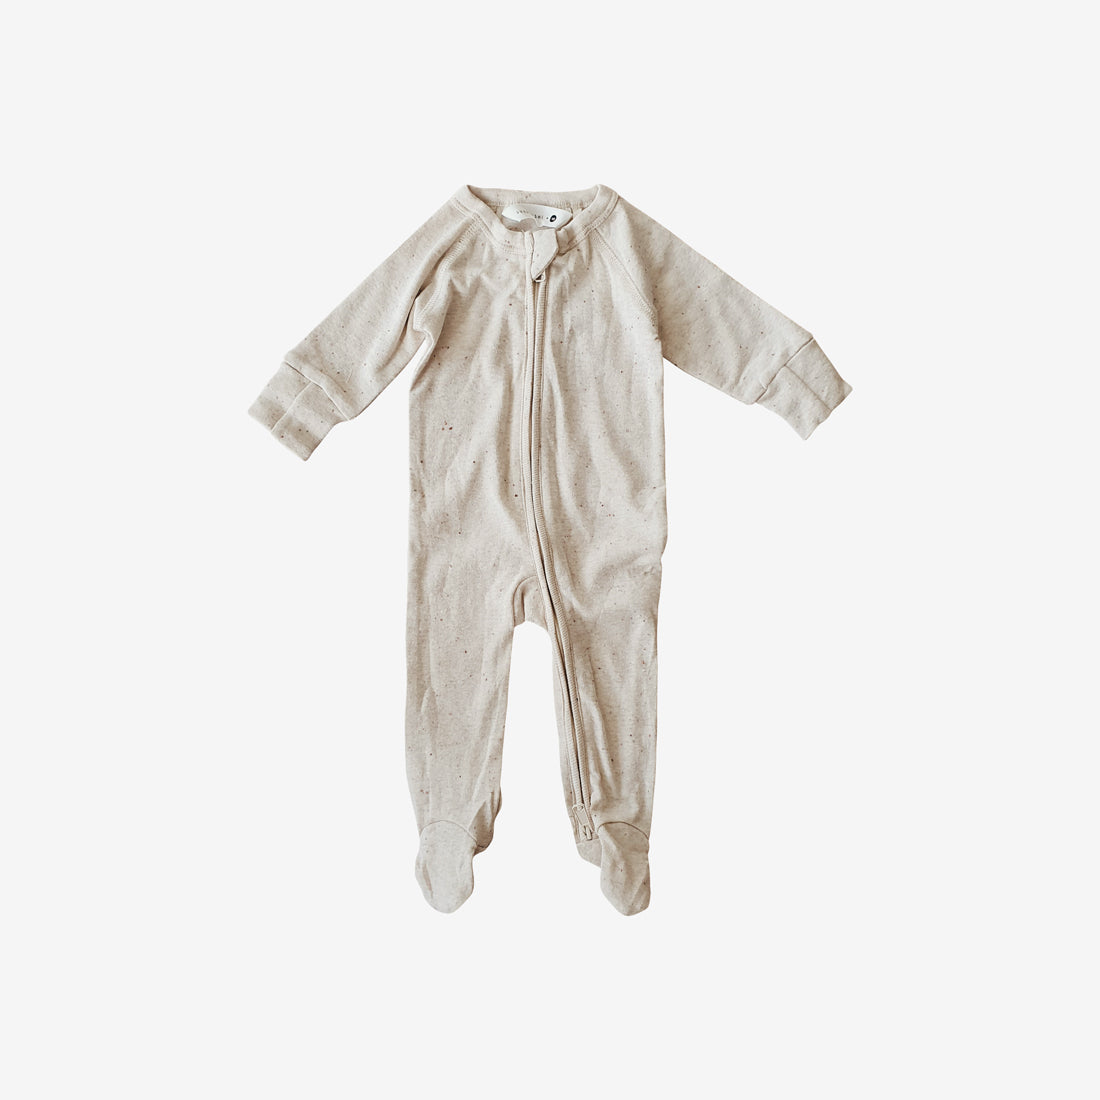 Organic Cotton Footed Zip Growsuit - Cotton Speckled